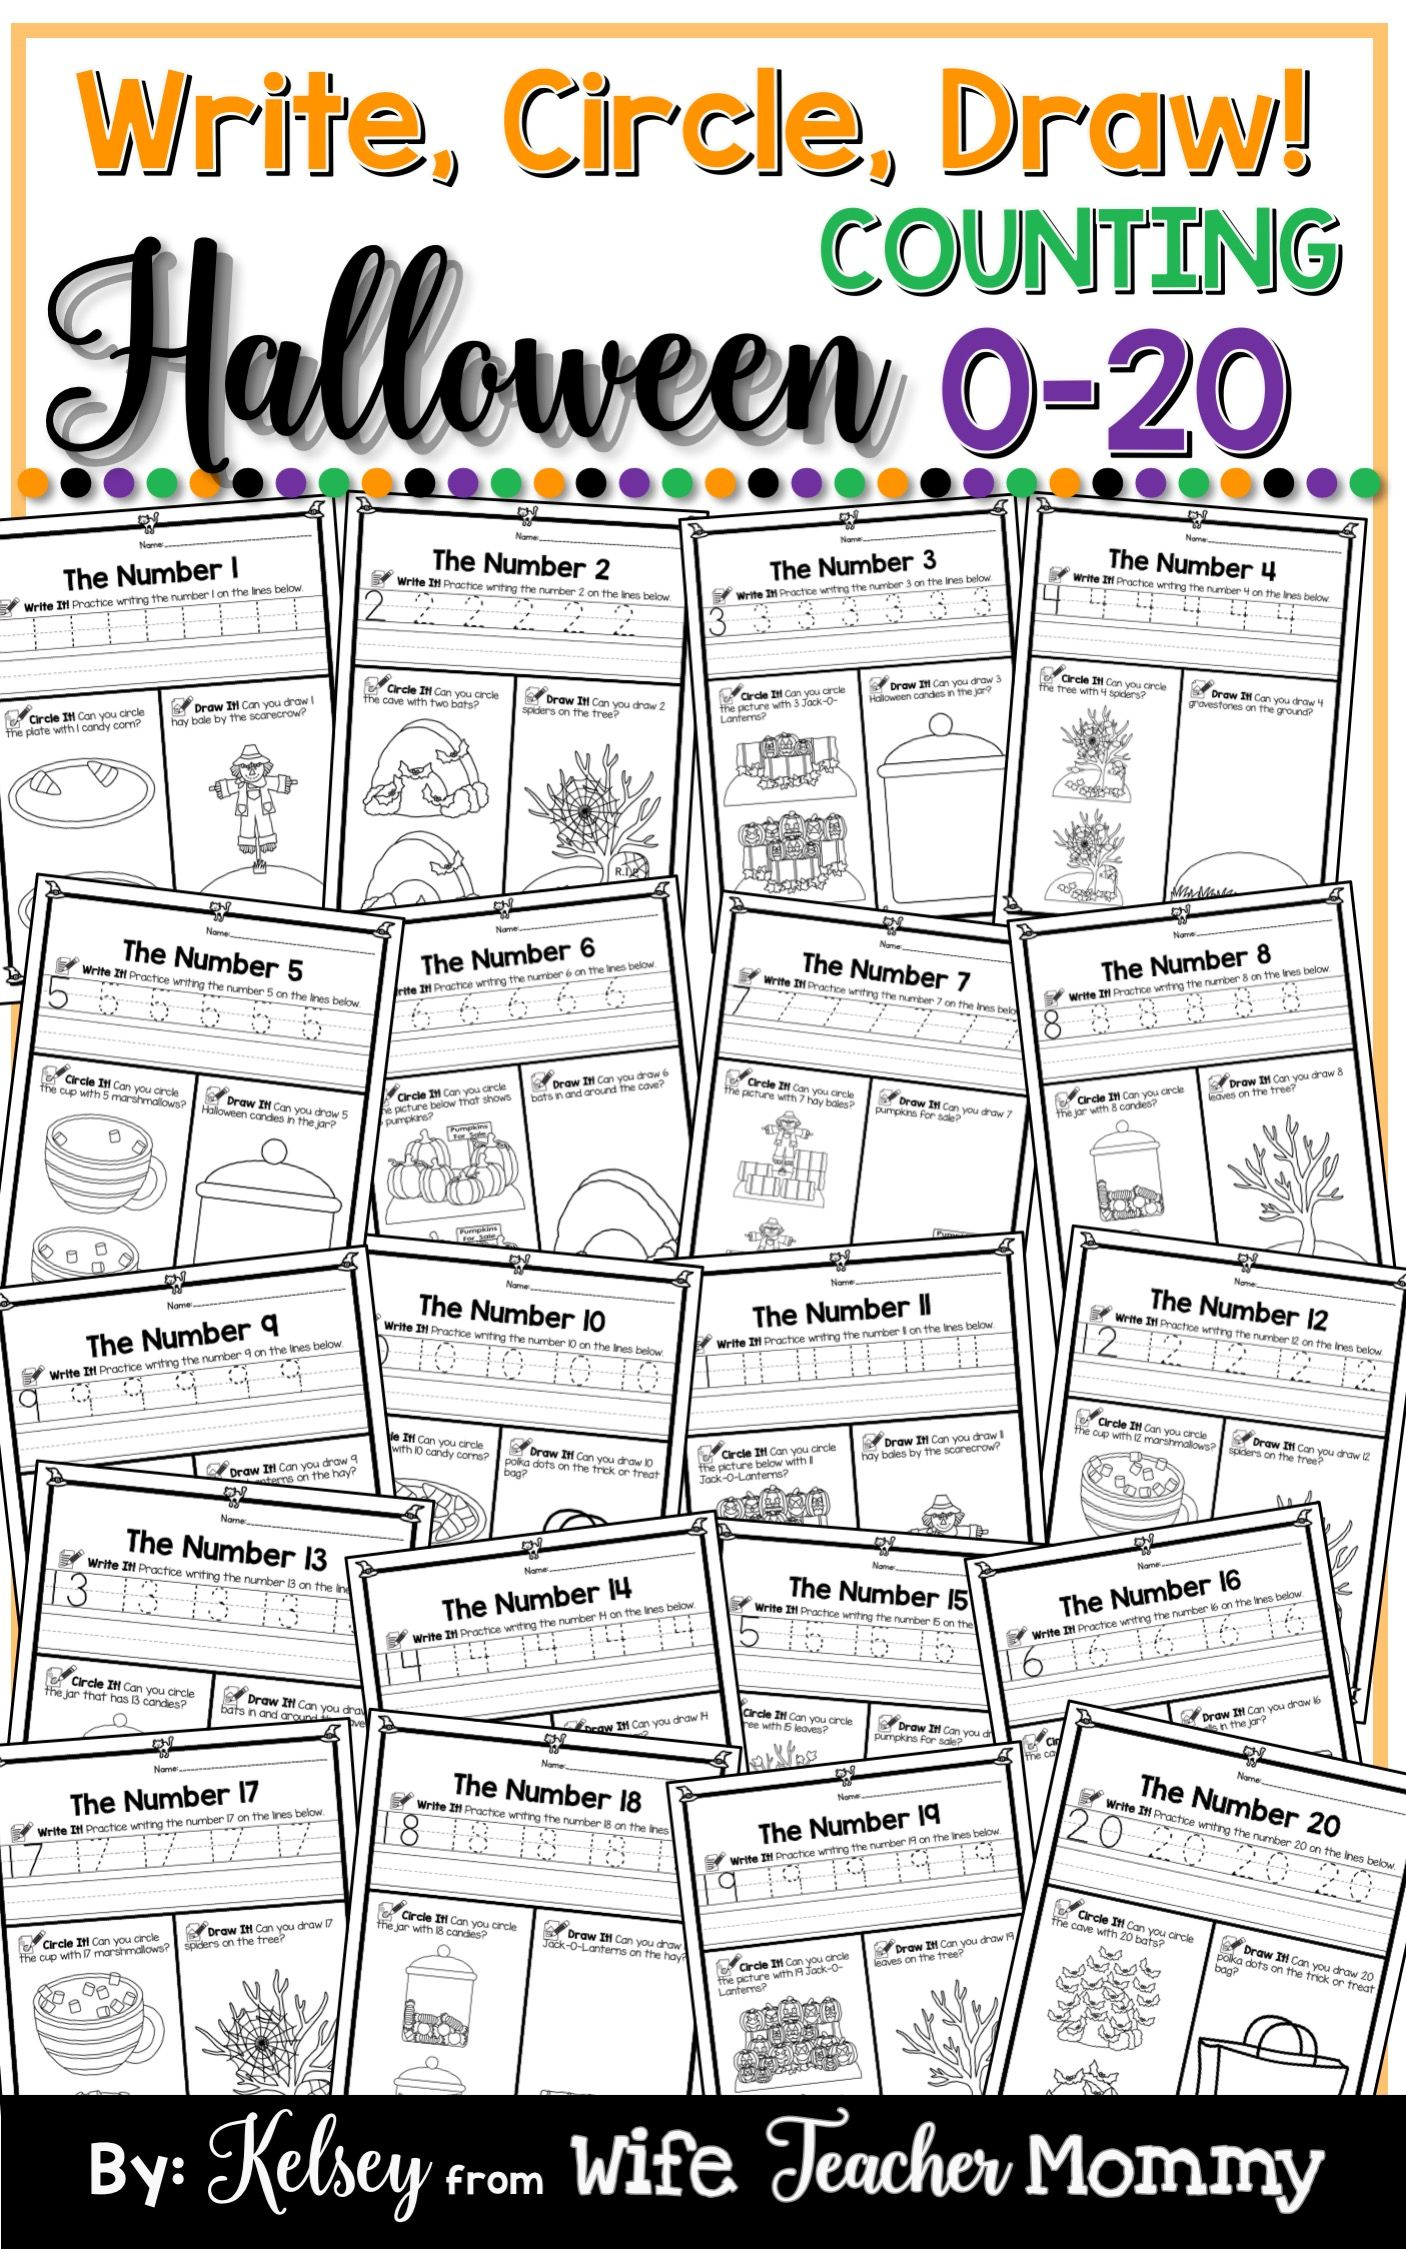 8 Best Worksheets Halloween Writing Images On Best